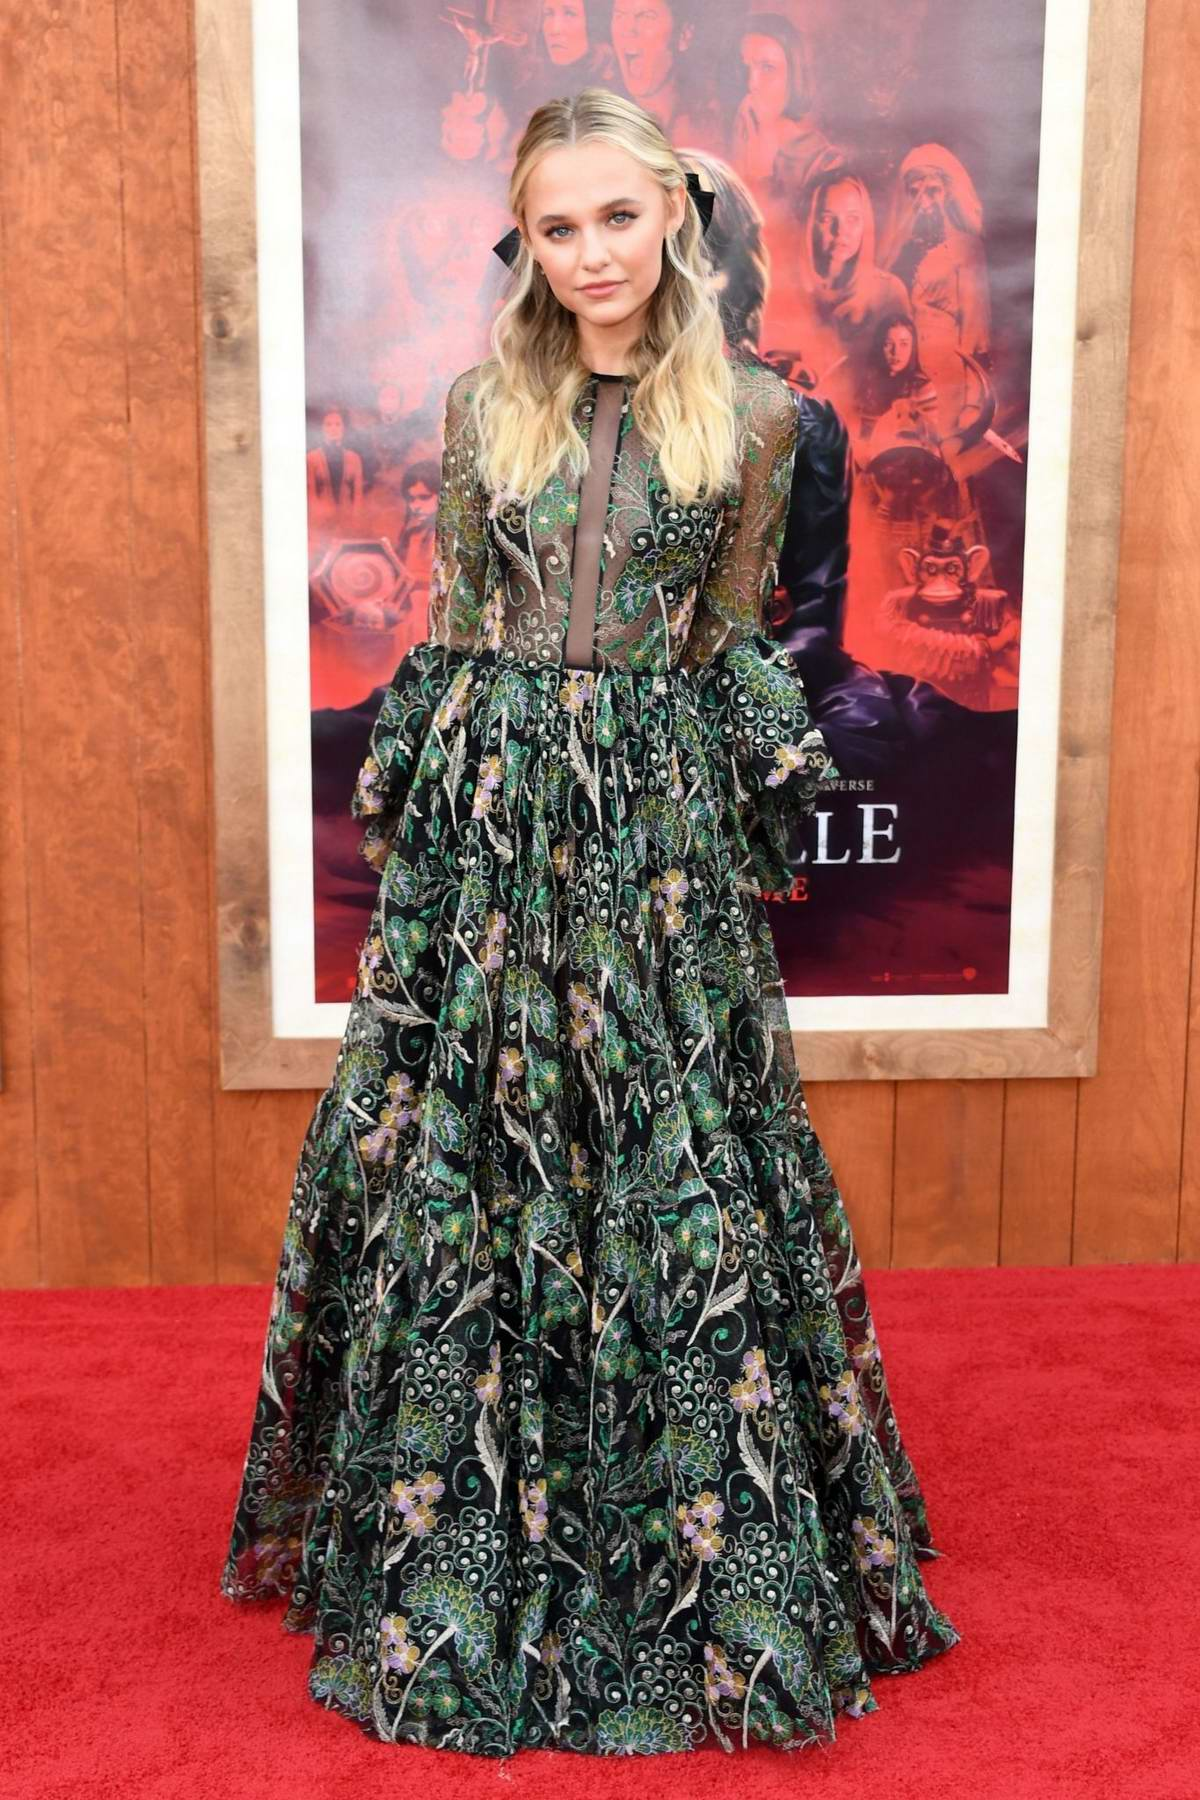 Madison Iseman attends the World Premiere of 'Annabelle Comes Home' at the Regency Village Theatre in Los Angeles